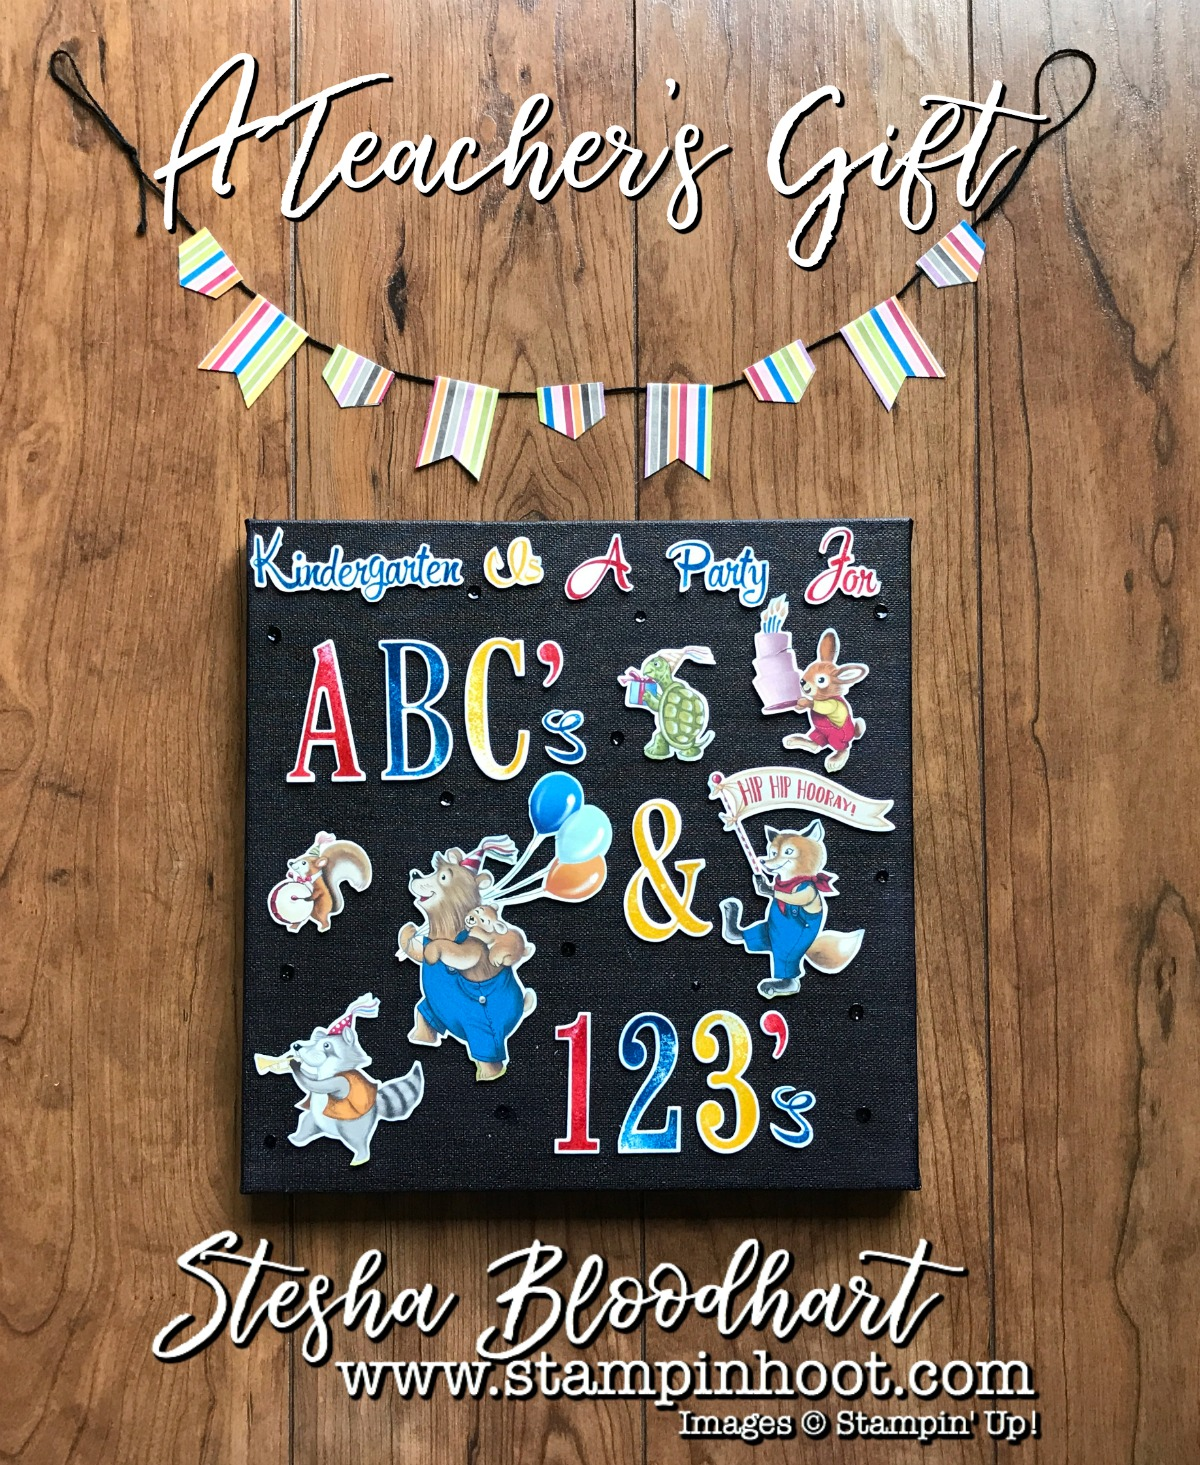 Canvas Wall Art for A Teacher's Gift Made with Stampin' Up! Products. Letters for You Stamp Set, Large Letter Framelits Dies, Number of Years Stamp Set, Large Numbers Framelits Dies, Birthday Memories Suite #wallart #papercrafts #stampinup #steshabloodhart #teachergift #kindergartenteacher